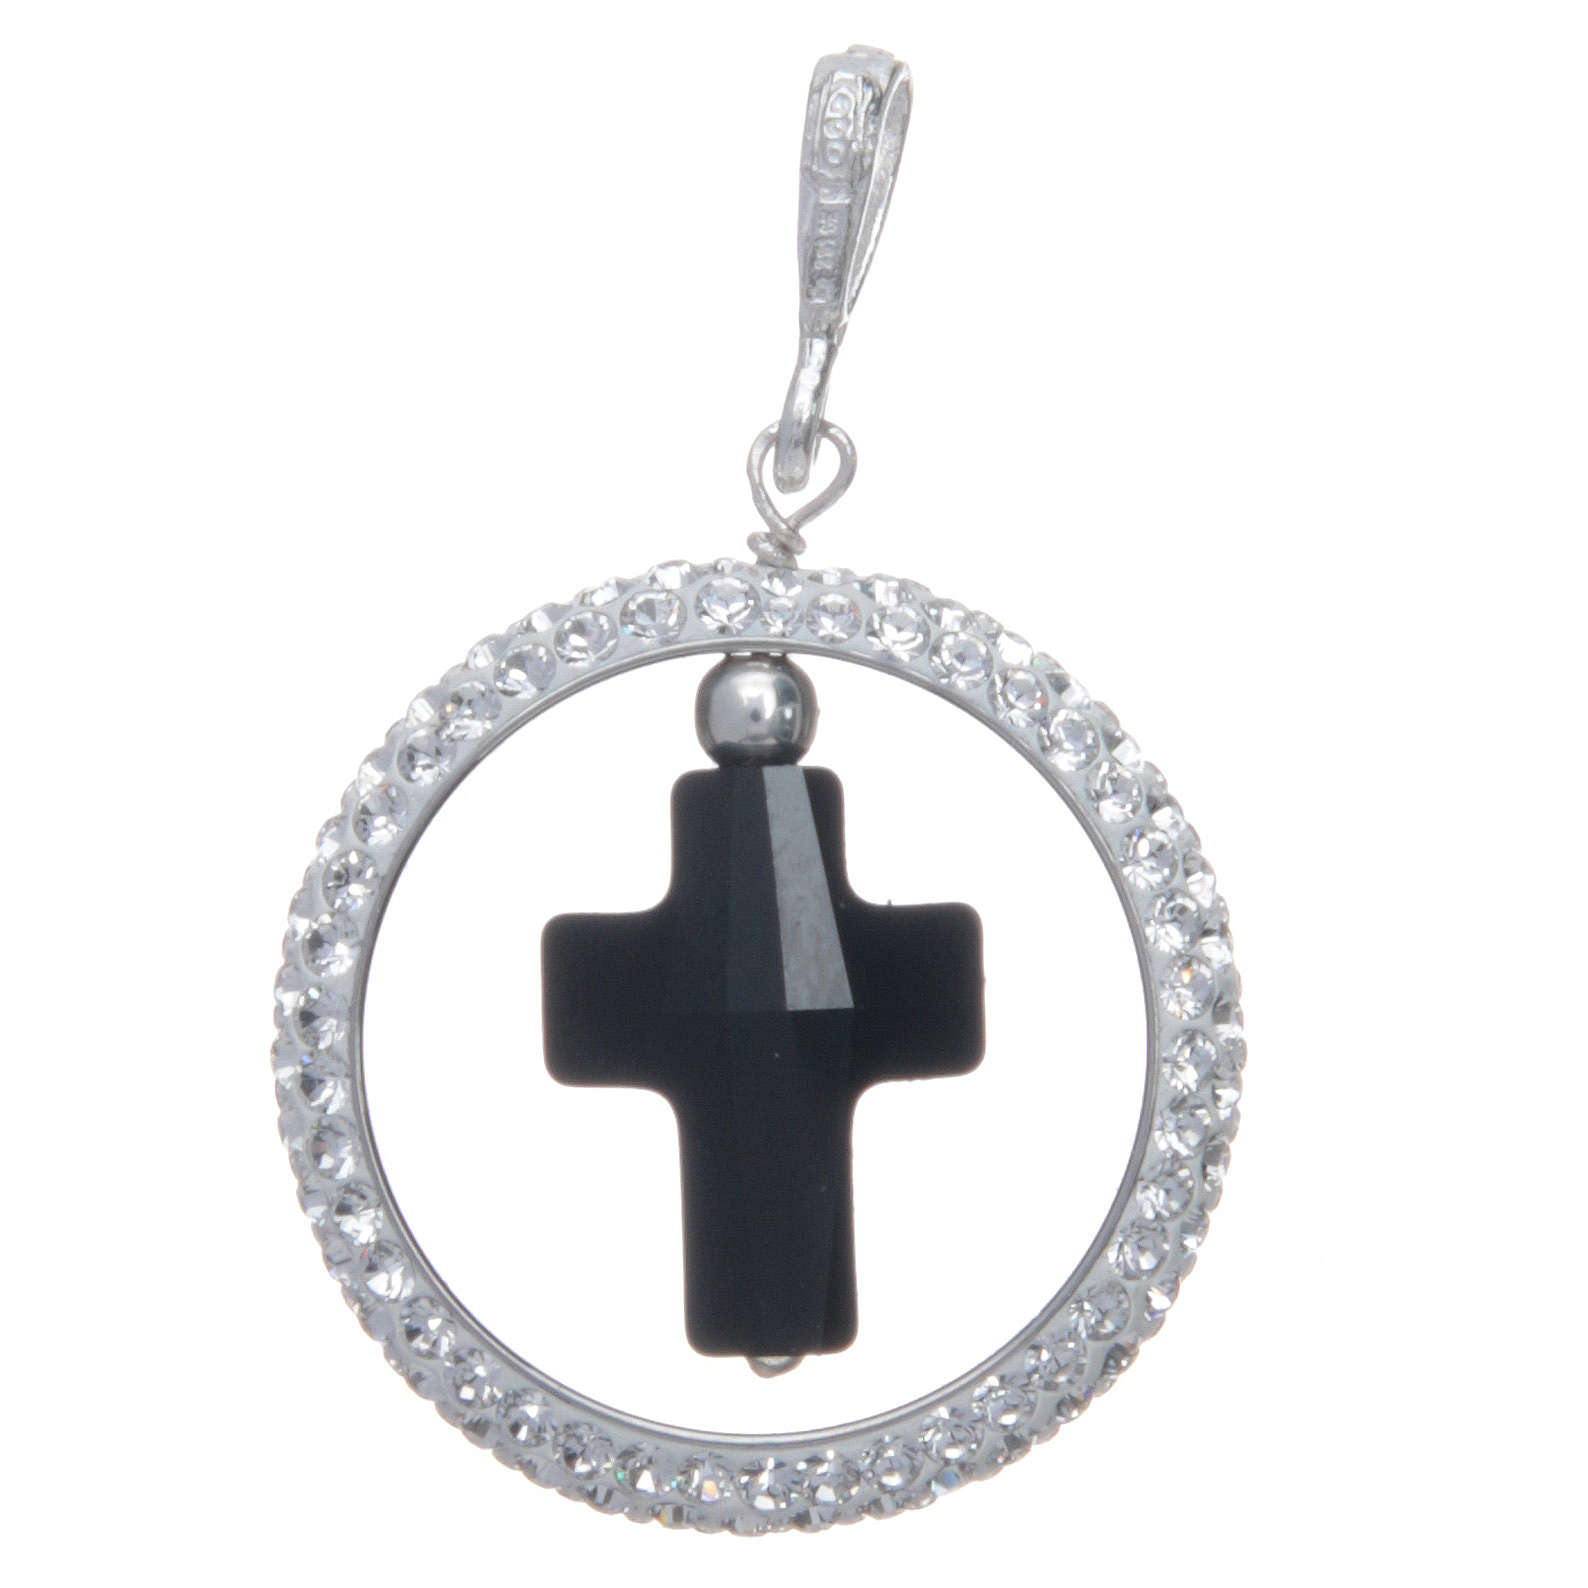 Charm With Sett Ring And Black Swarovski Cross In Sterling